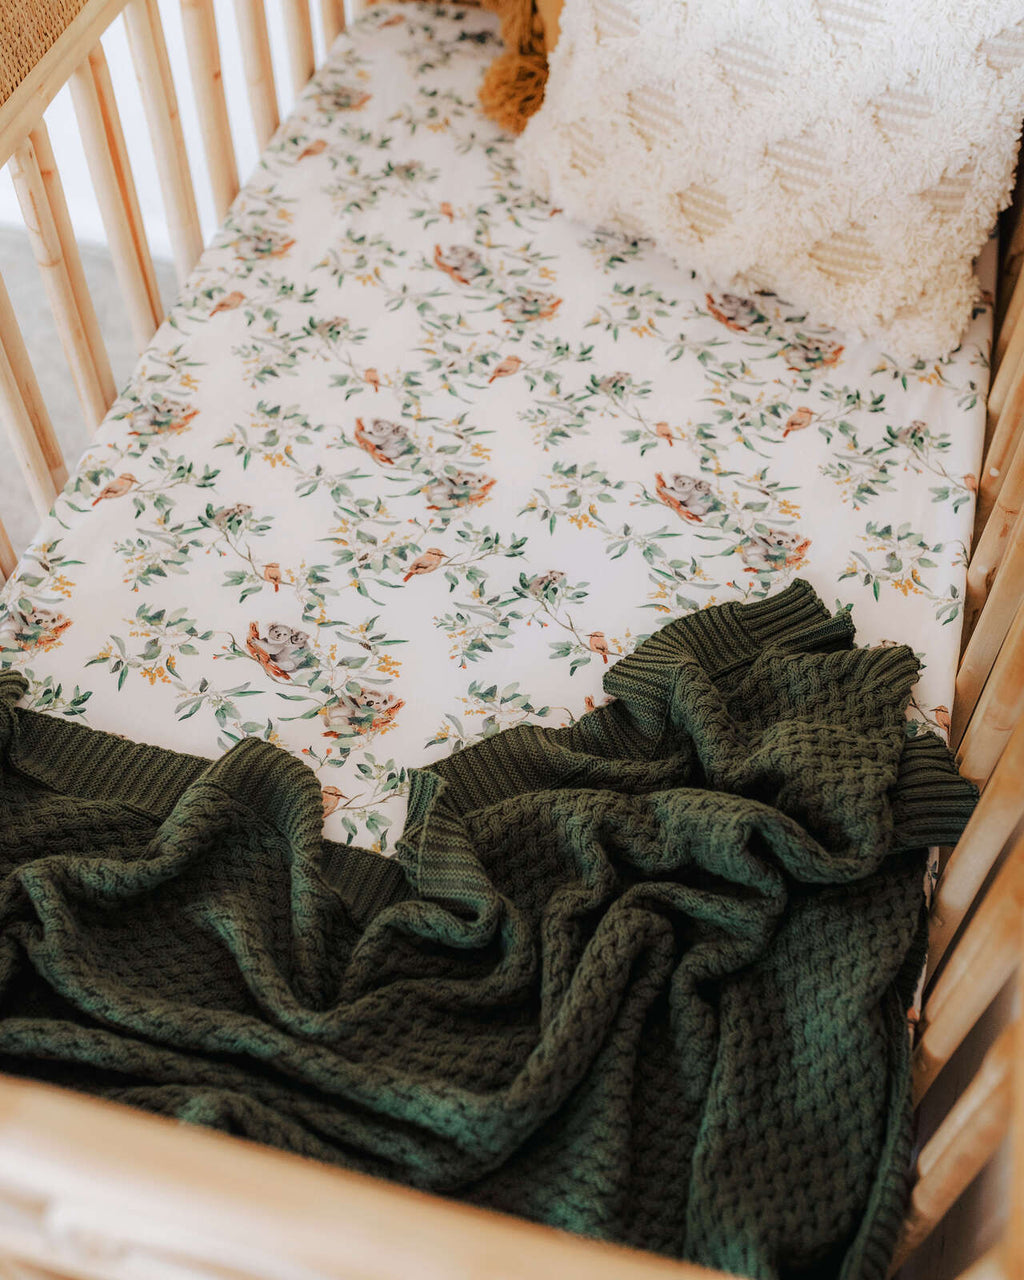 Snuggle Hunny Diamond Knit Baby Blanket - Olive